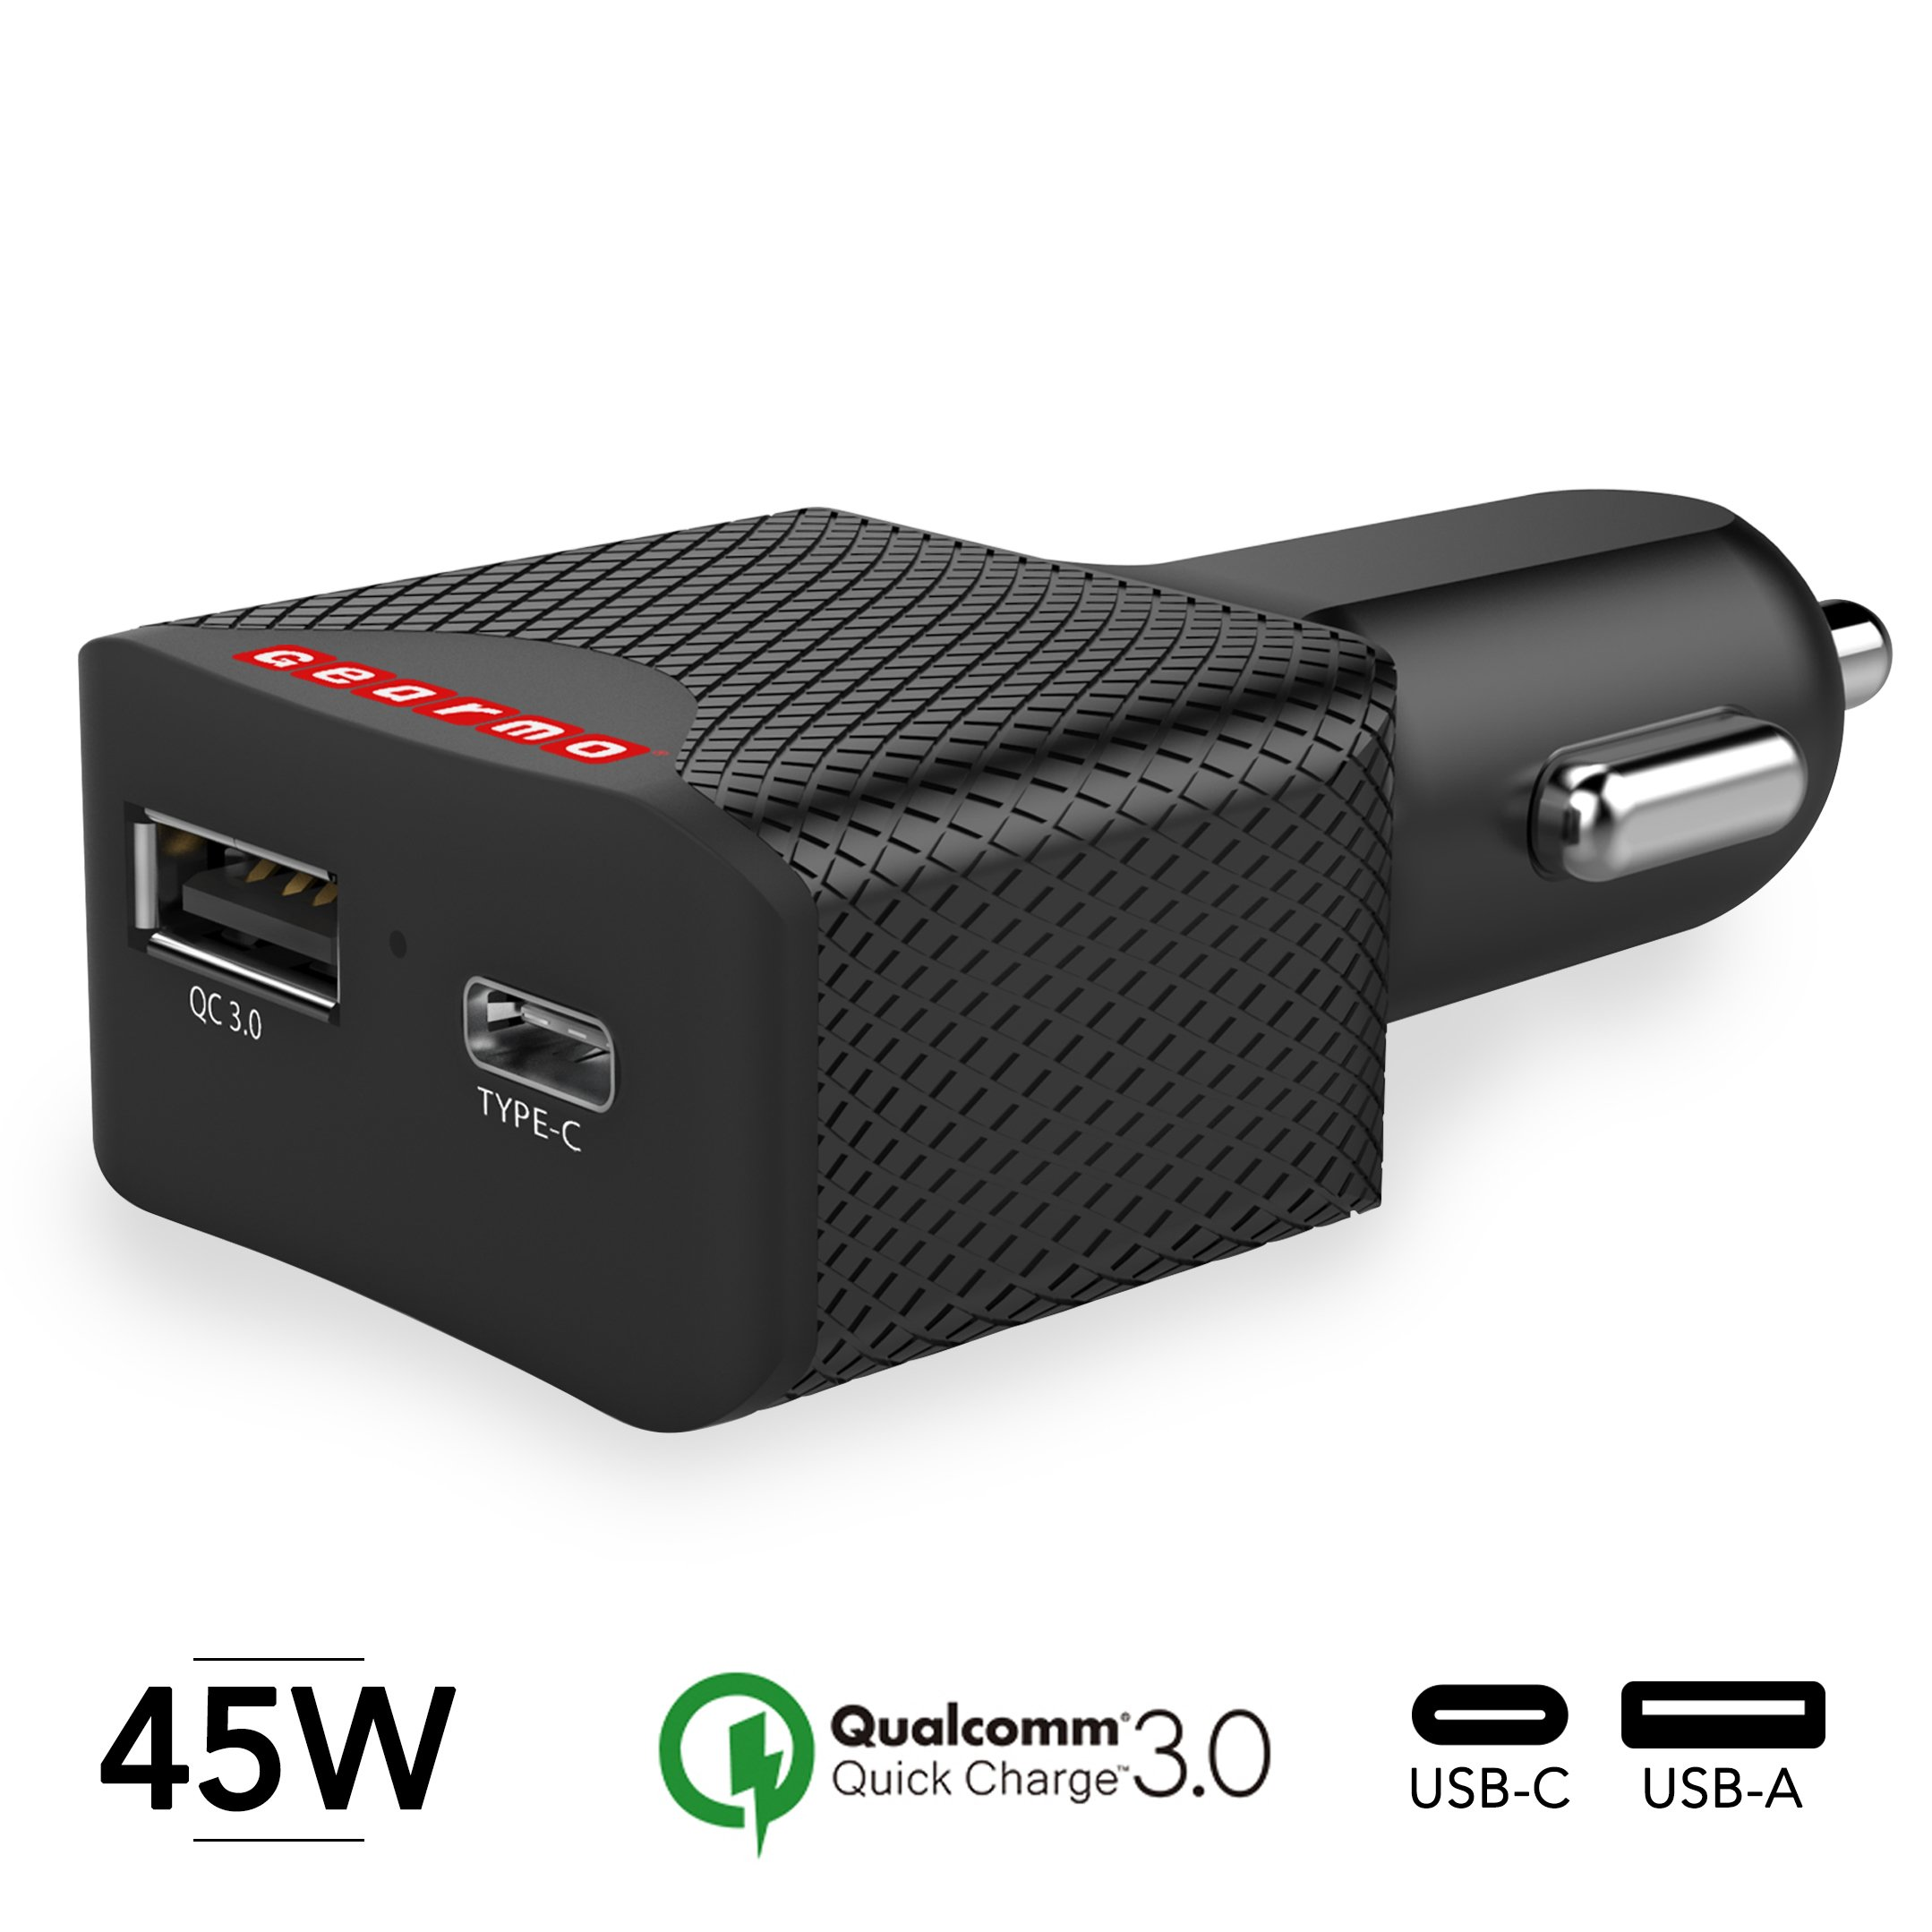 Gearmo USB Type-C PD 60W Total Output 45 Watt Car Charger for Laptops